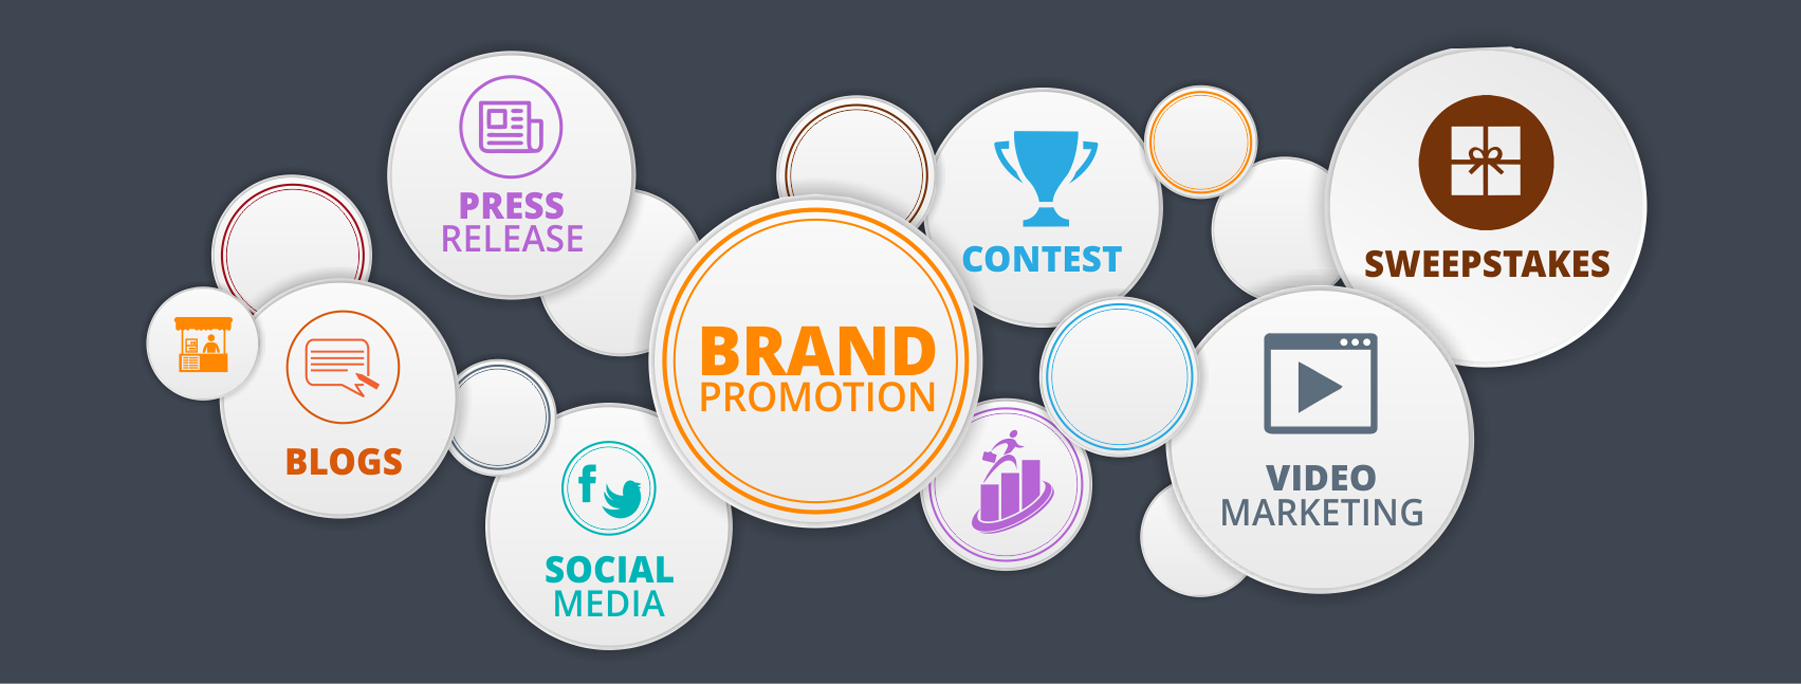 brand promotions 2020 brand solutions is an outsourced marketing services partner our business is to maximize your brand we help organizations assess their marketing needs and strategically identify the most effective branded marketing collateral to meet their goals.